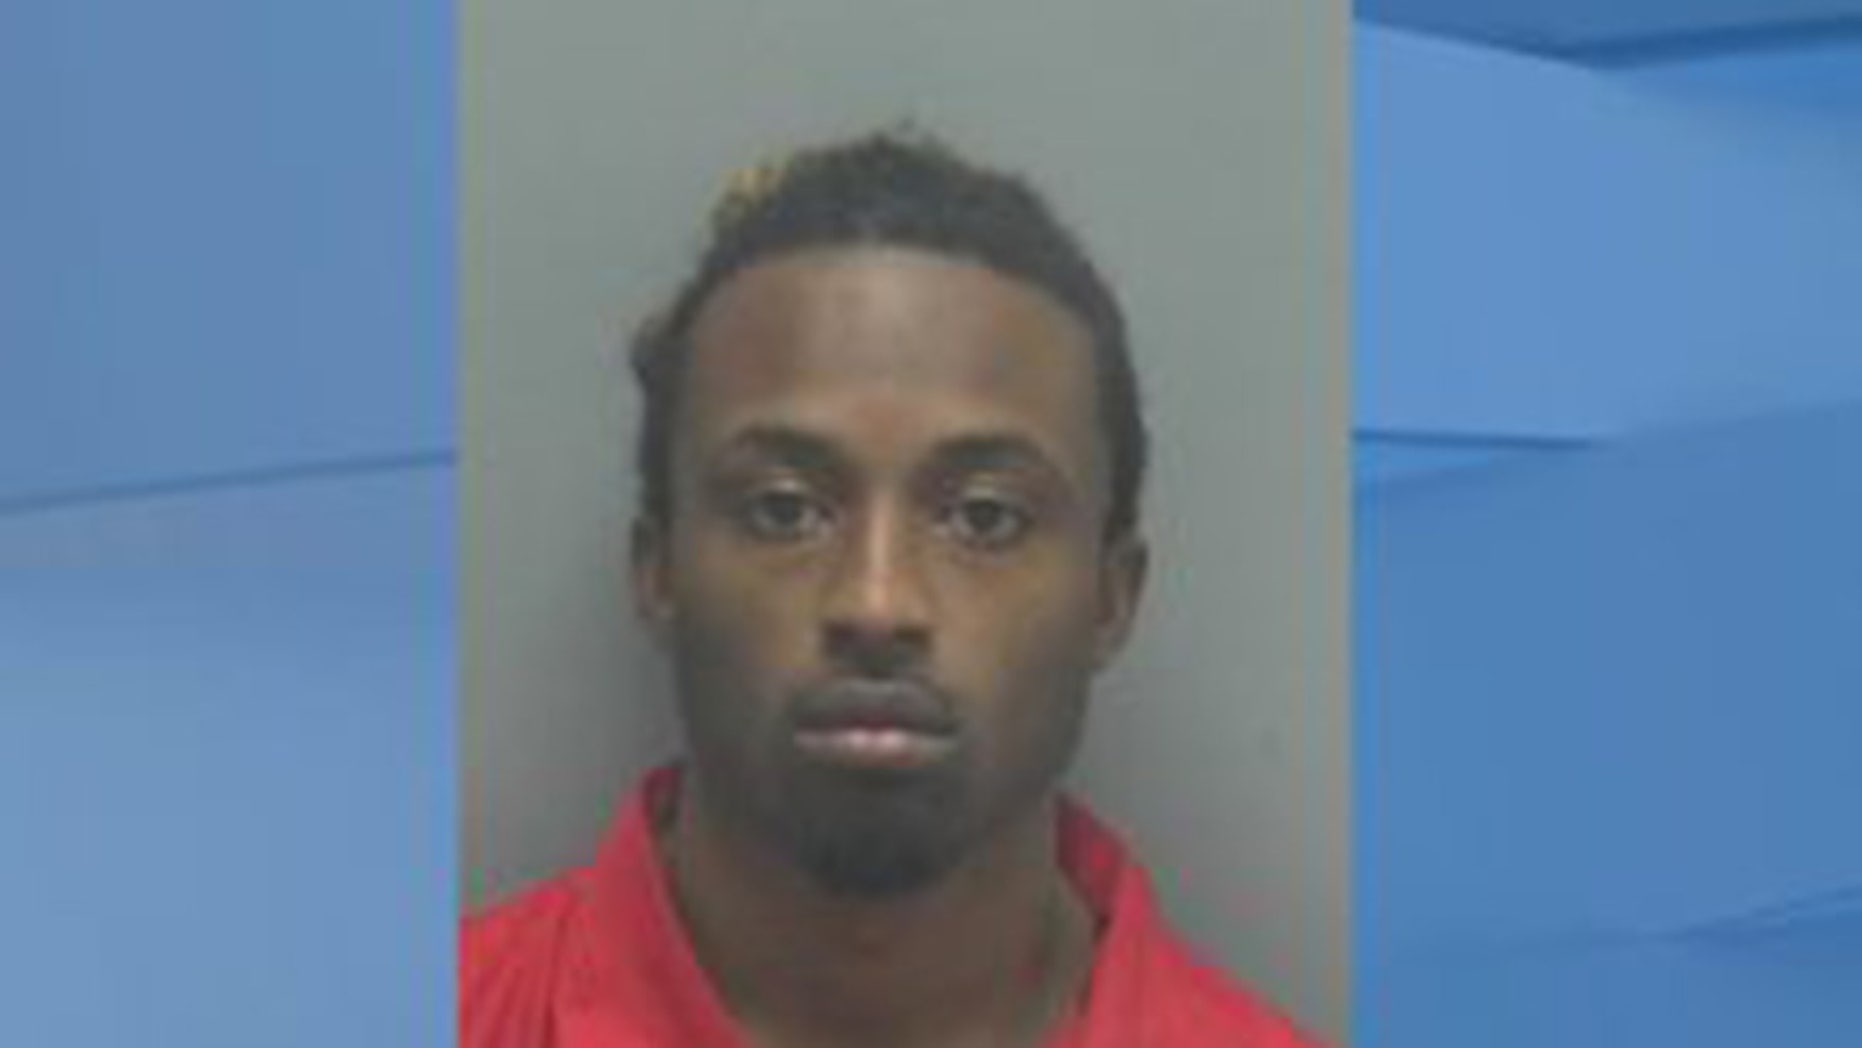 Willie Jordan Jr. is accused of leaving his two kids, ages 3 months and 3 years, unattended in his car while he went inside a strip club.